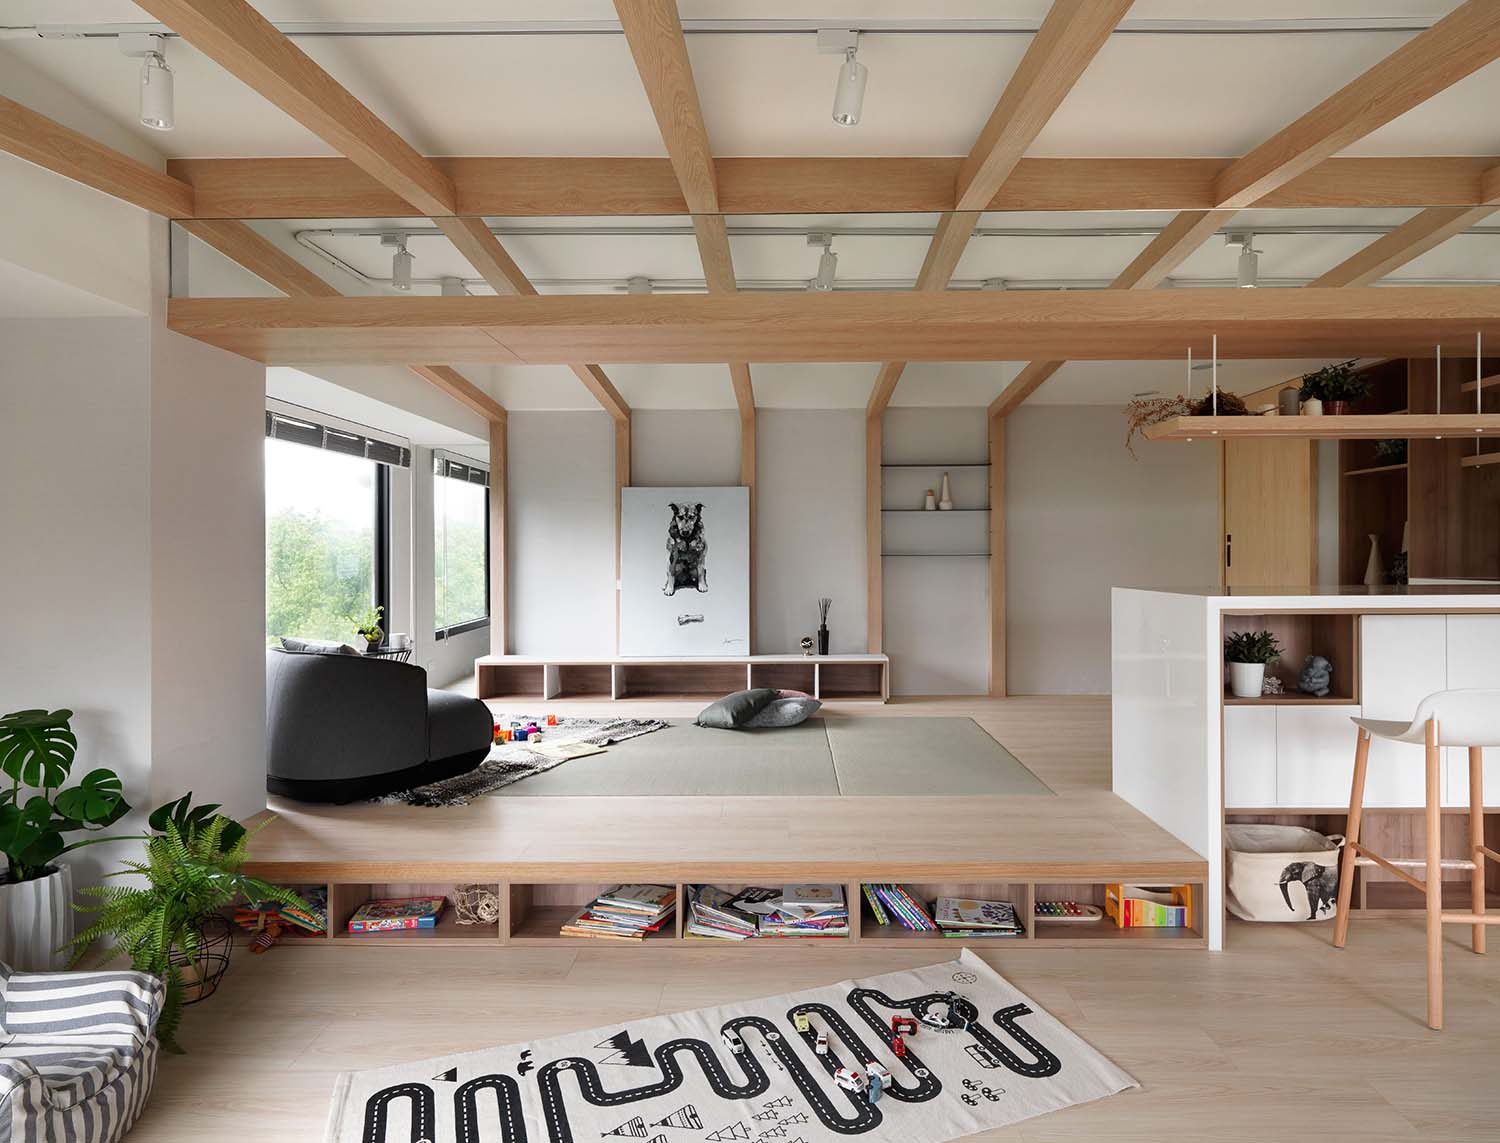 After School Shared Residential Space by Tsung-Ju Lu and Lin Tsai-Wen is Winner in Interior Space and Exhibition Design Category, 2019 - 2020.